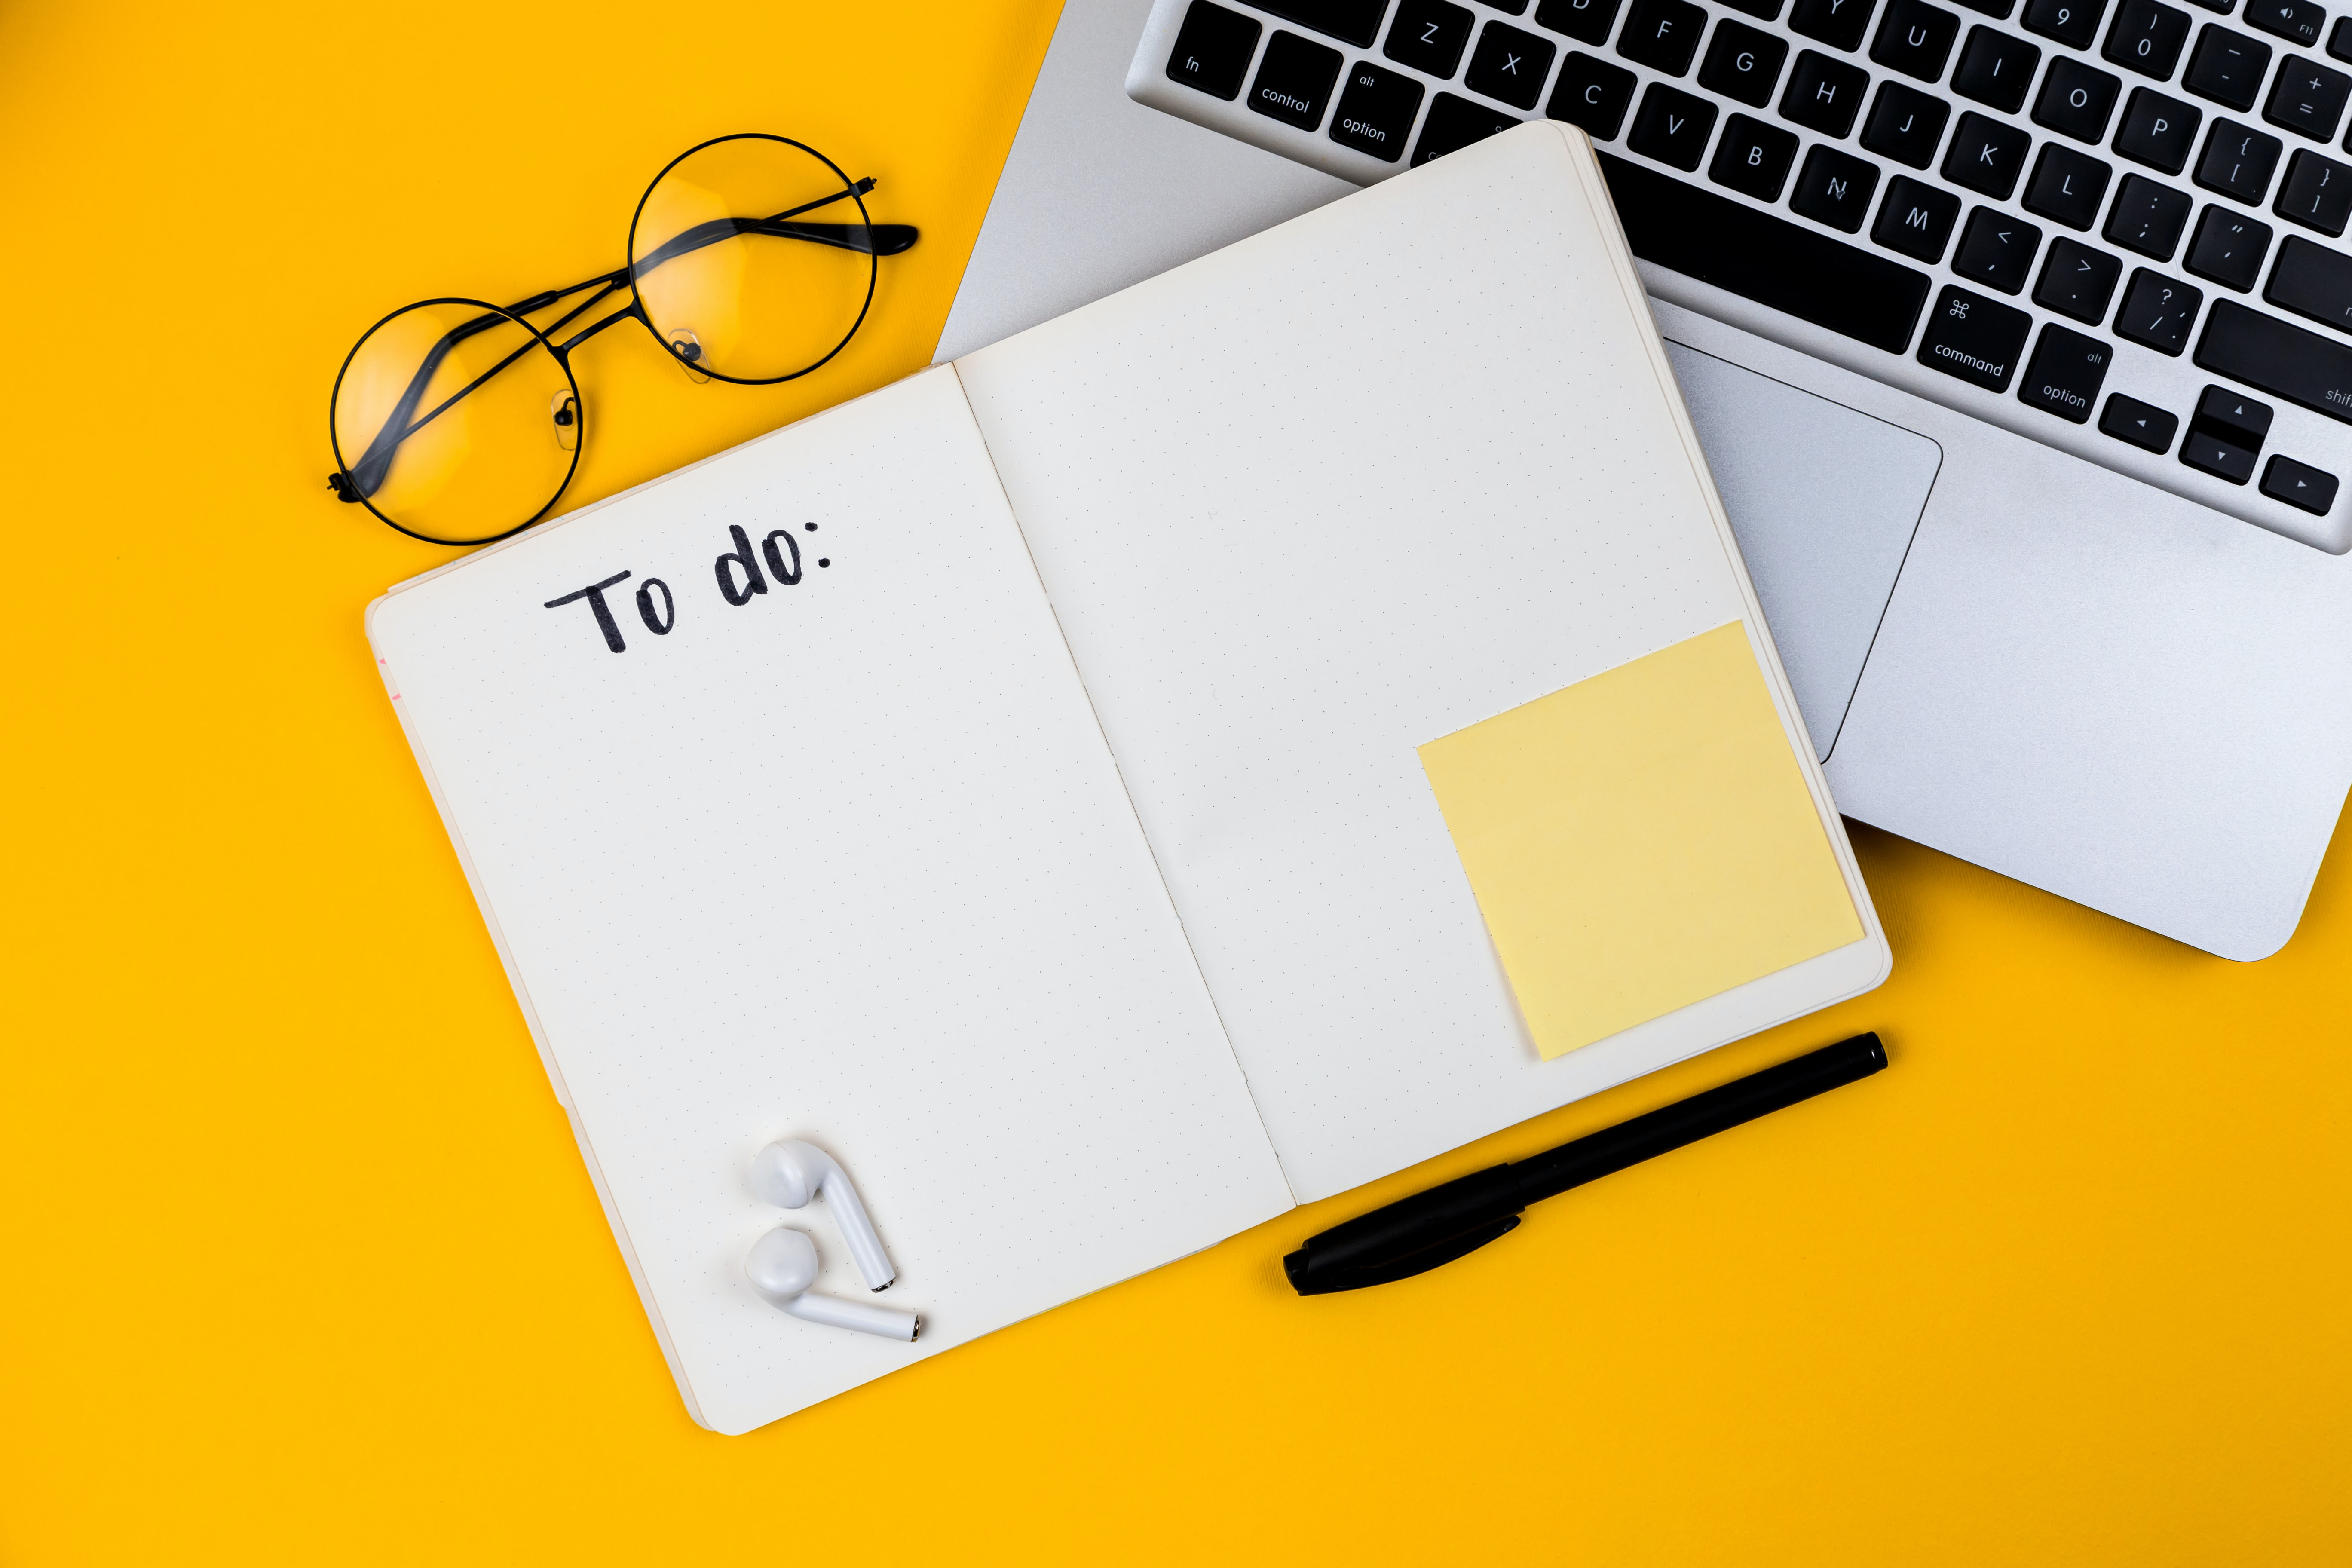 Notepad and glasses on yellow background